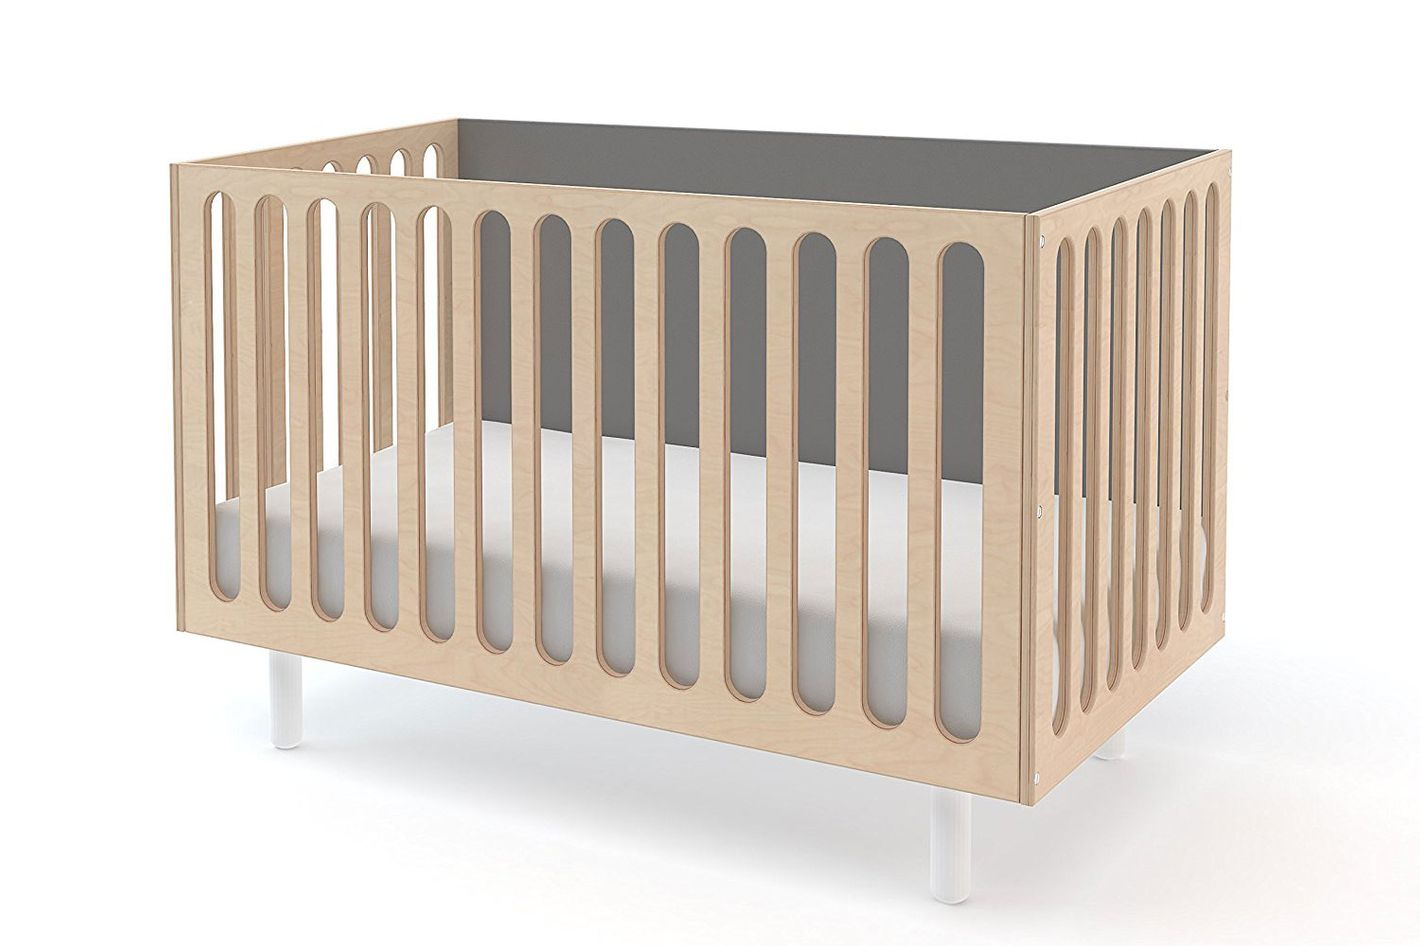 Baby bed and beyond -  Eco Friendly And Adaptable This Crib And Bassinet Set Will Take You From Newborn Through Baby Years And With The Addition Of A Toddler Conversion Kit